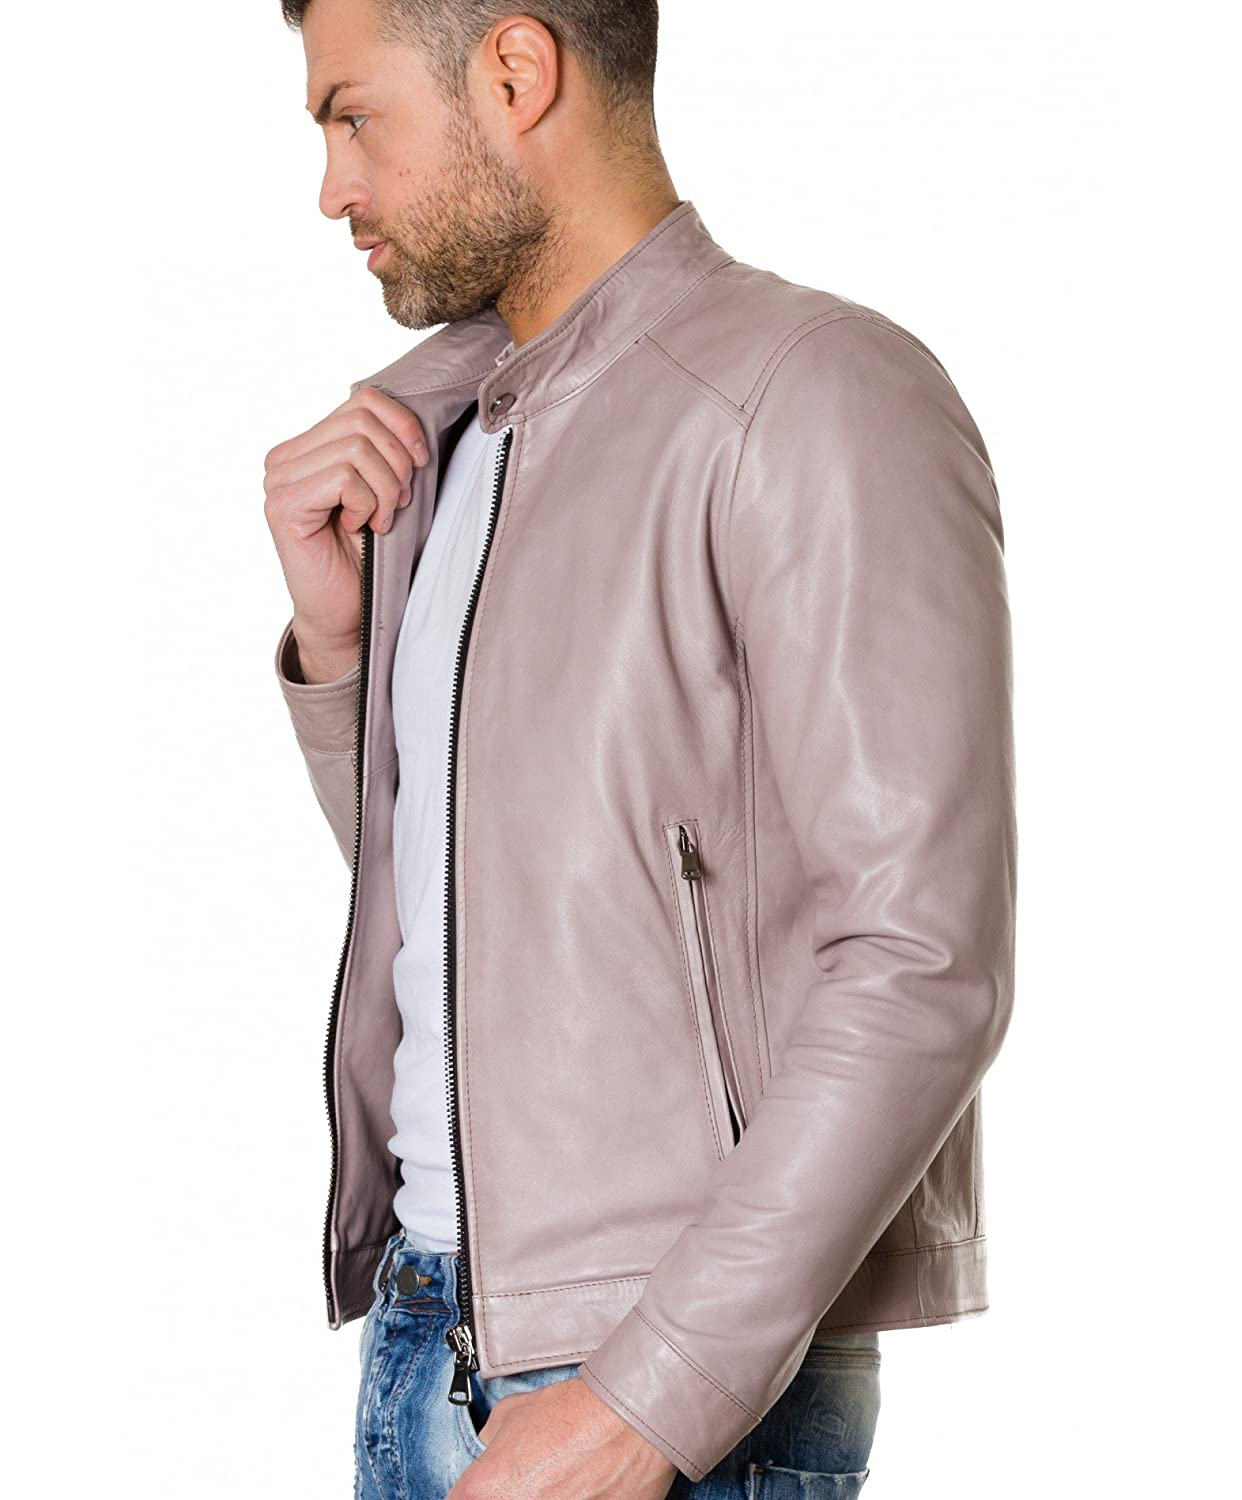 TED couleur grise blouson cuir homme style motard col mao